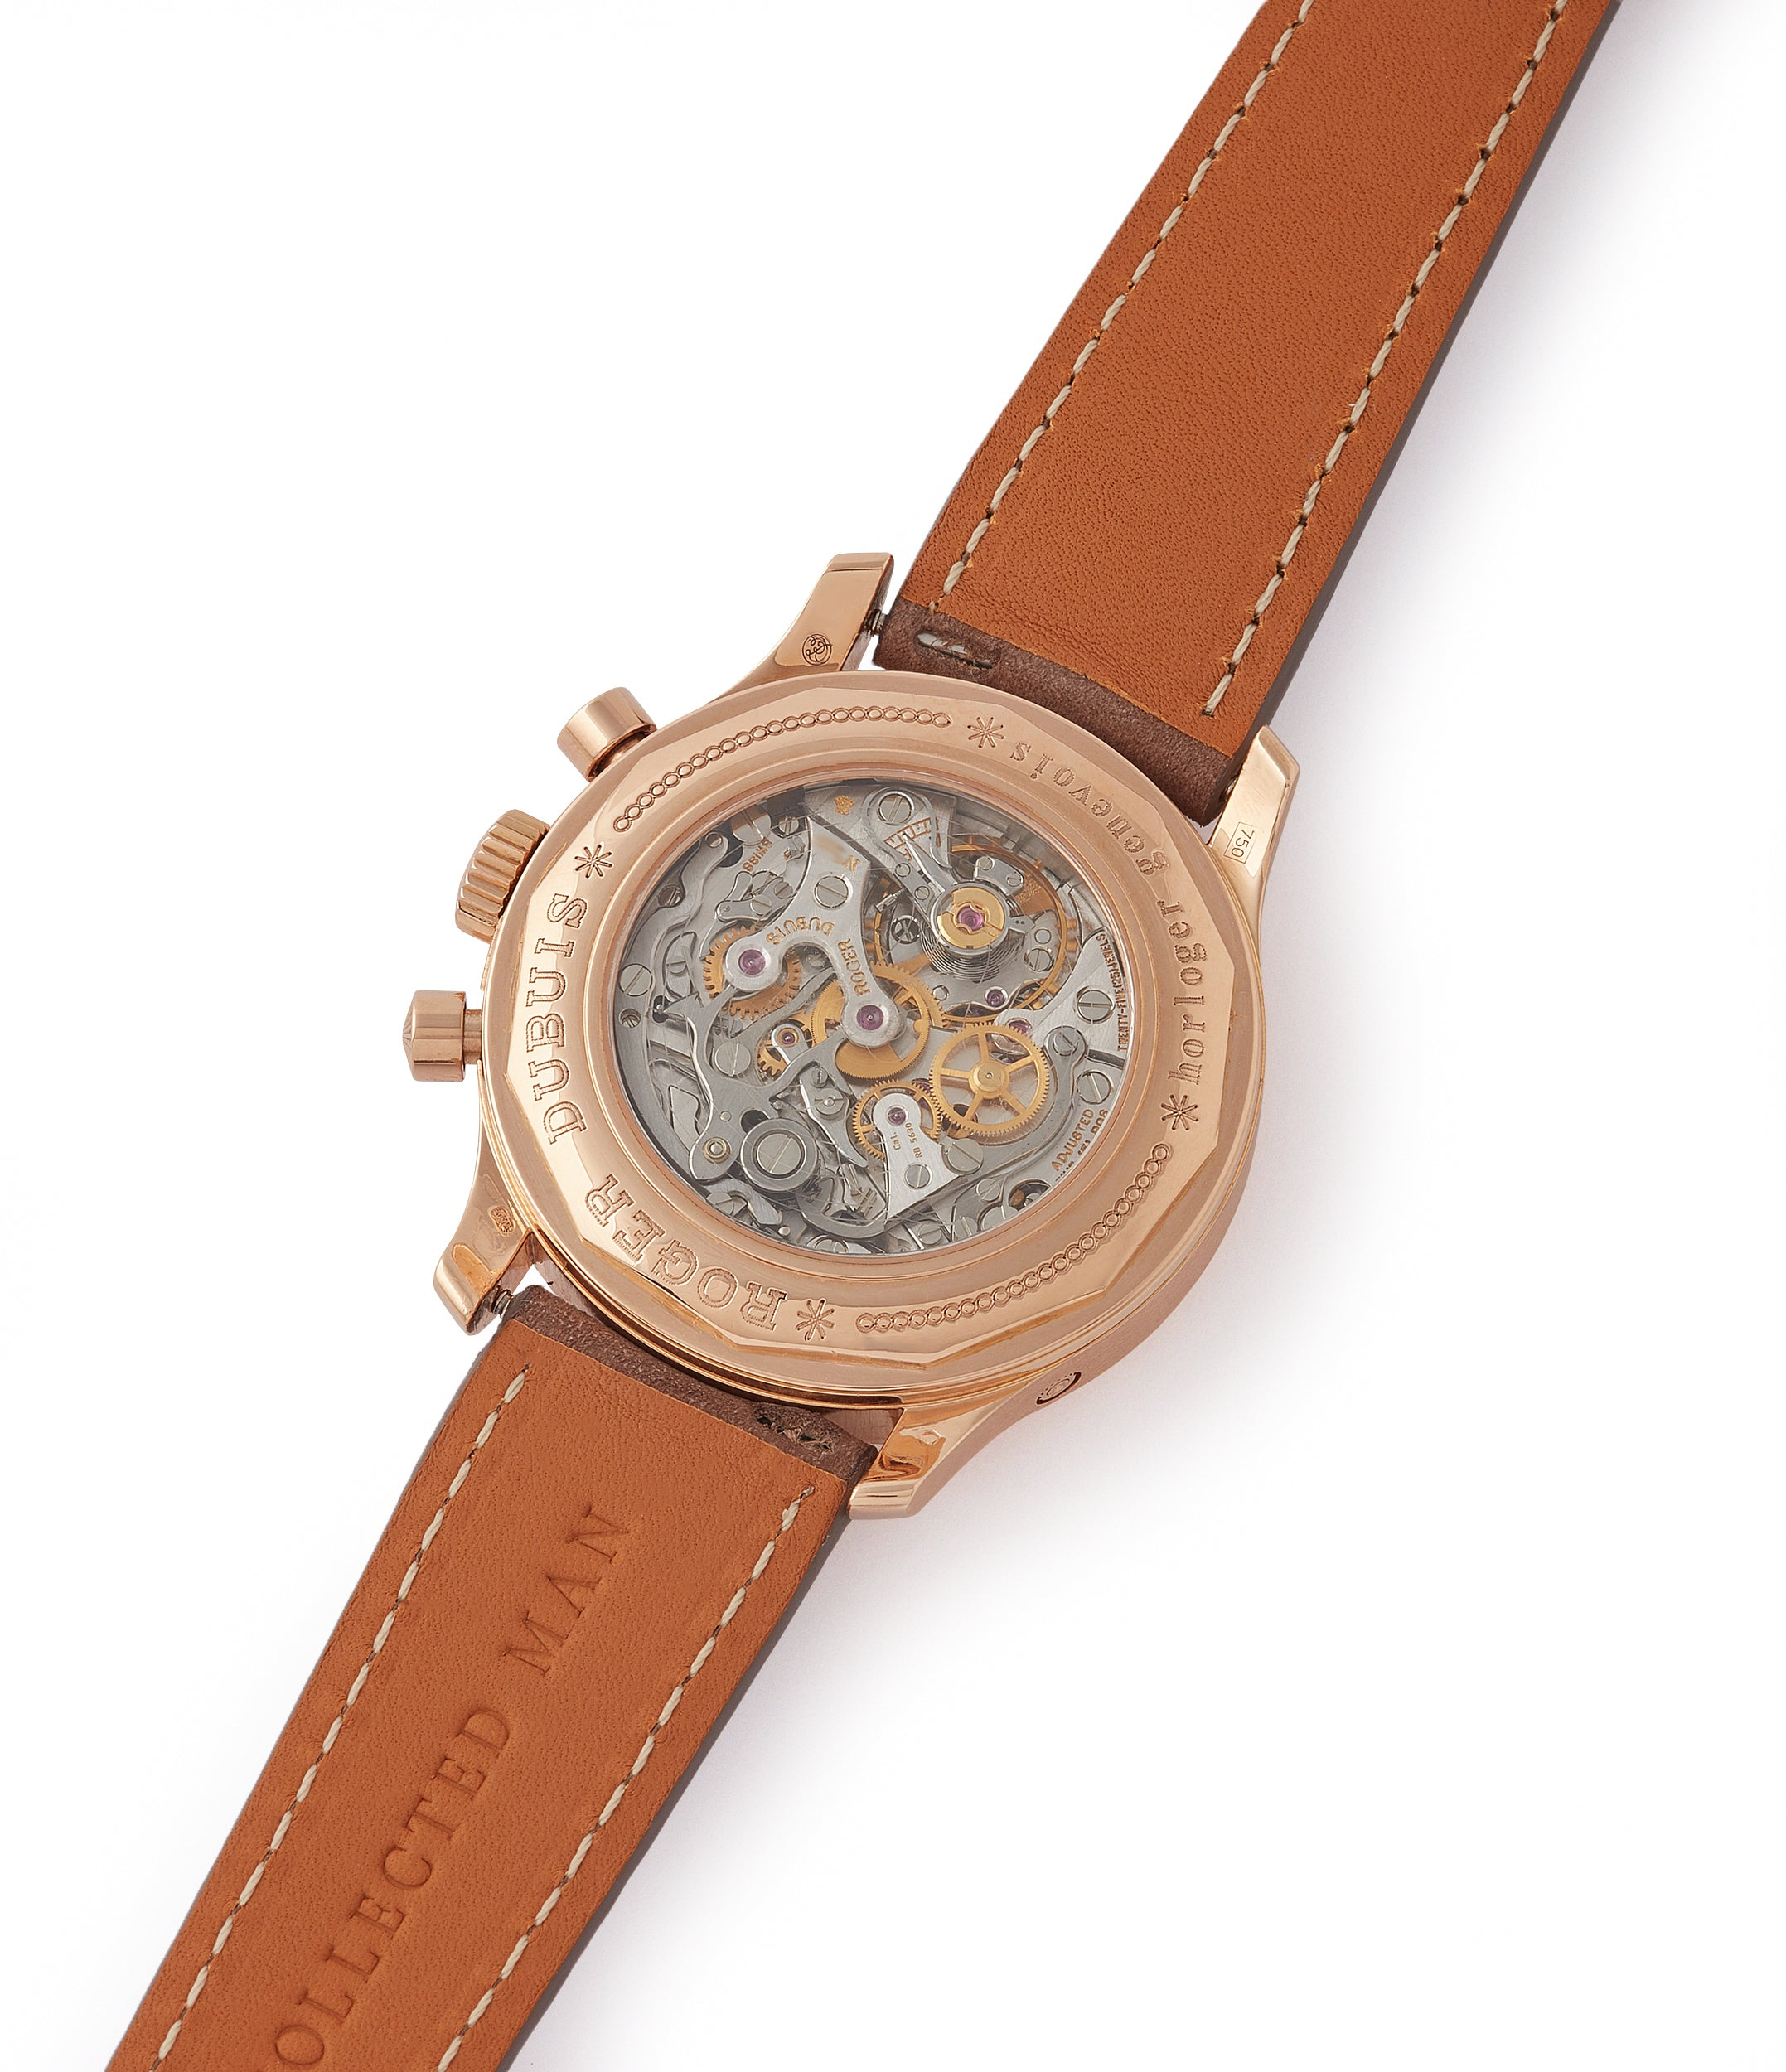 H40 560 Roger Dubuis Hommage bi-retrograde Chronograph limited edition rare rose gold lacquer dial watch for sale online at A Collected Man London UK specialist of rare watches